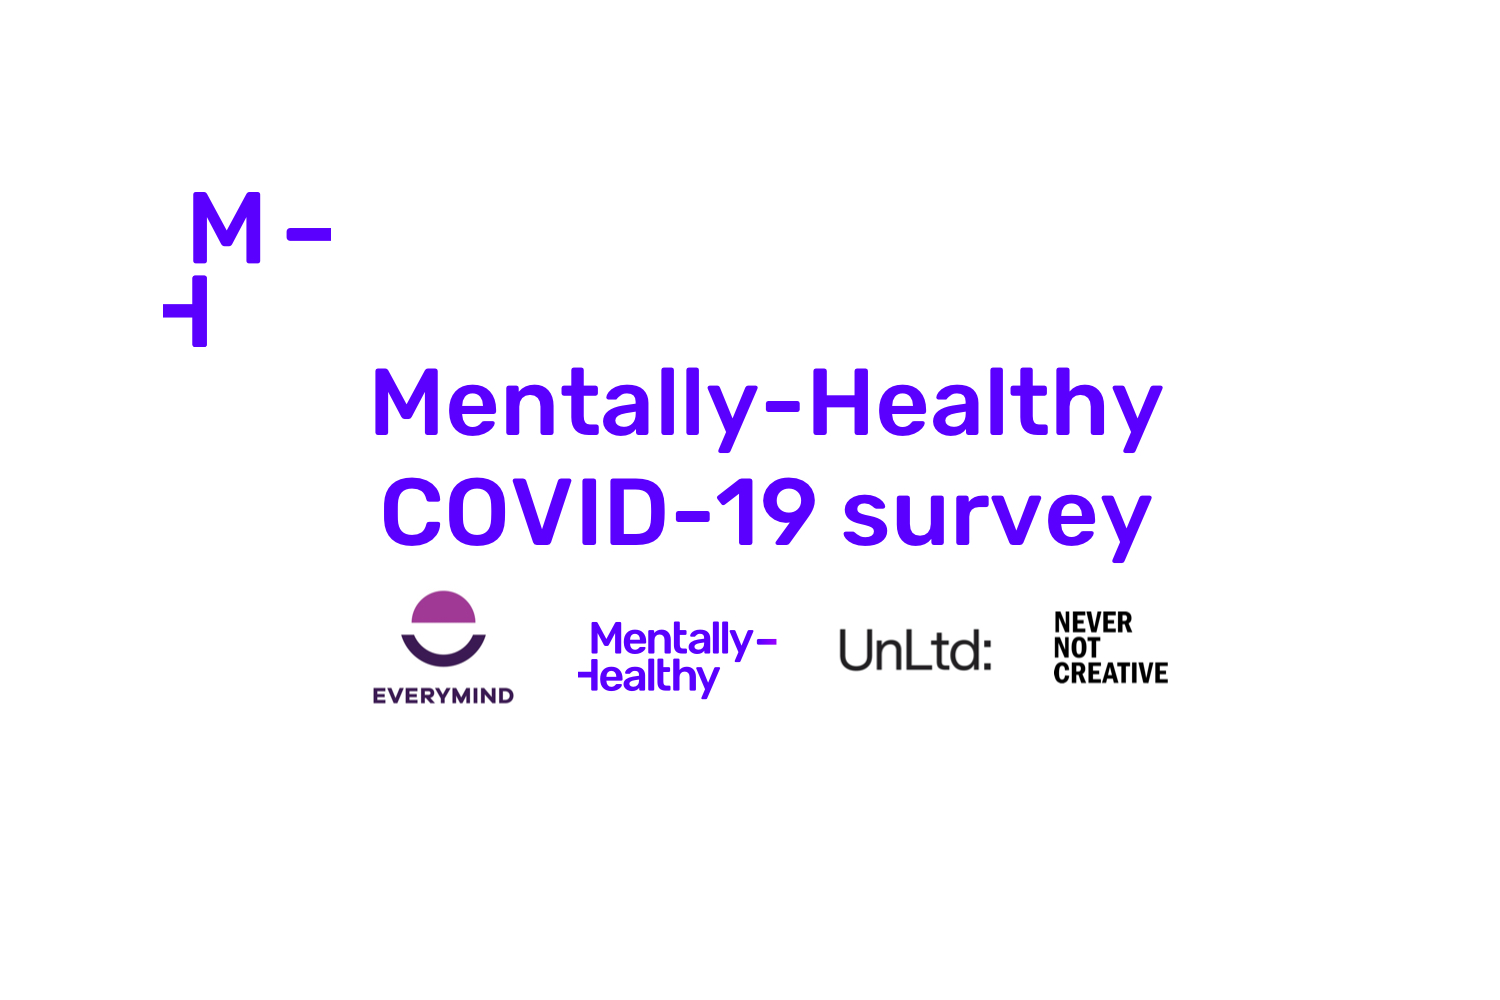 Mentally Healthy COVID-19 survey launches to measure changes in industry's mental health